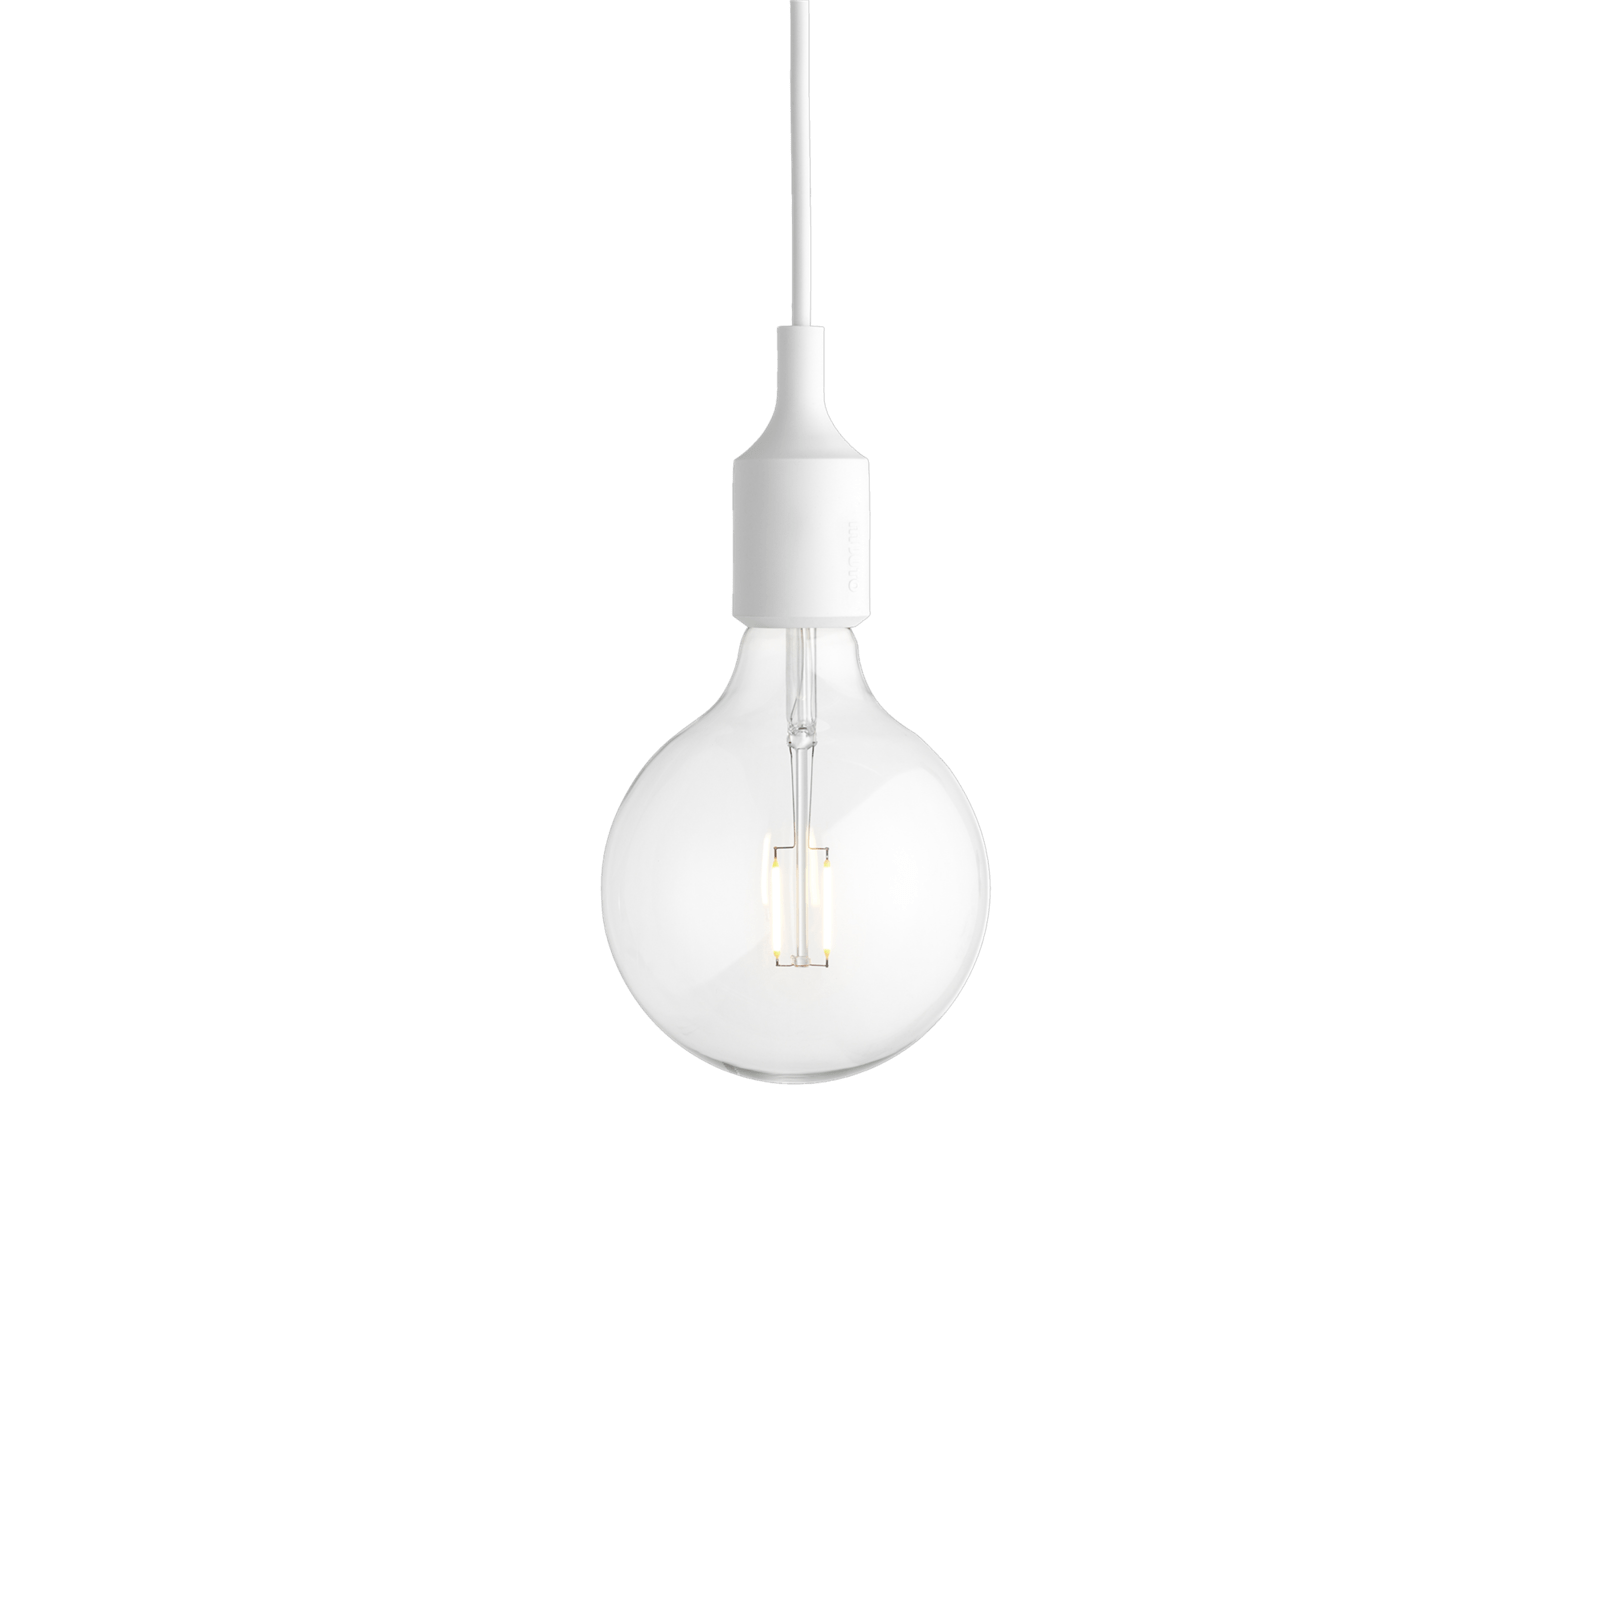 E27 Pendant Lamp Muuto E27 Pendant Light From Local Wood Clads Every Surface Of